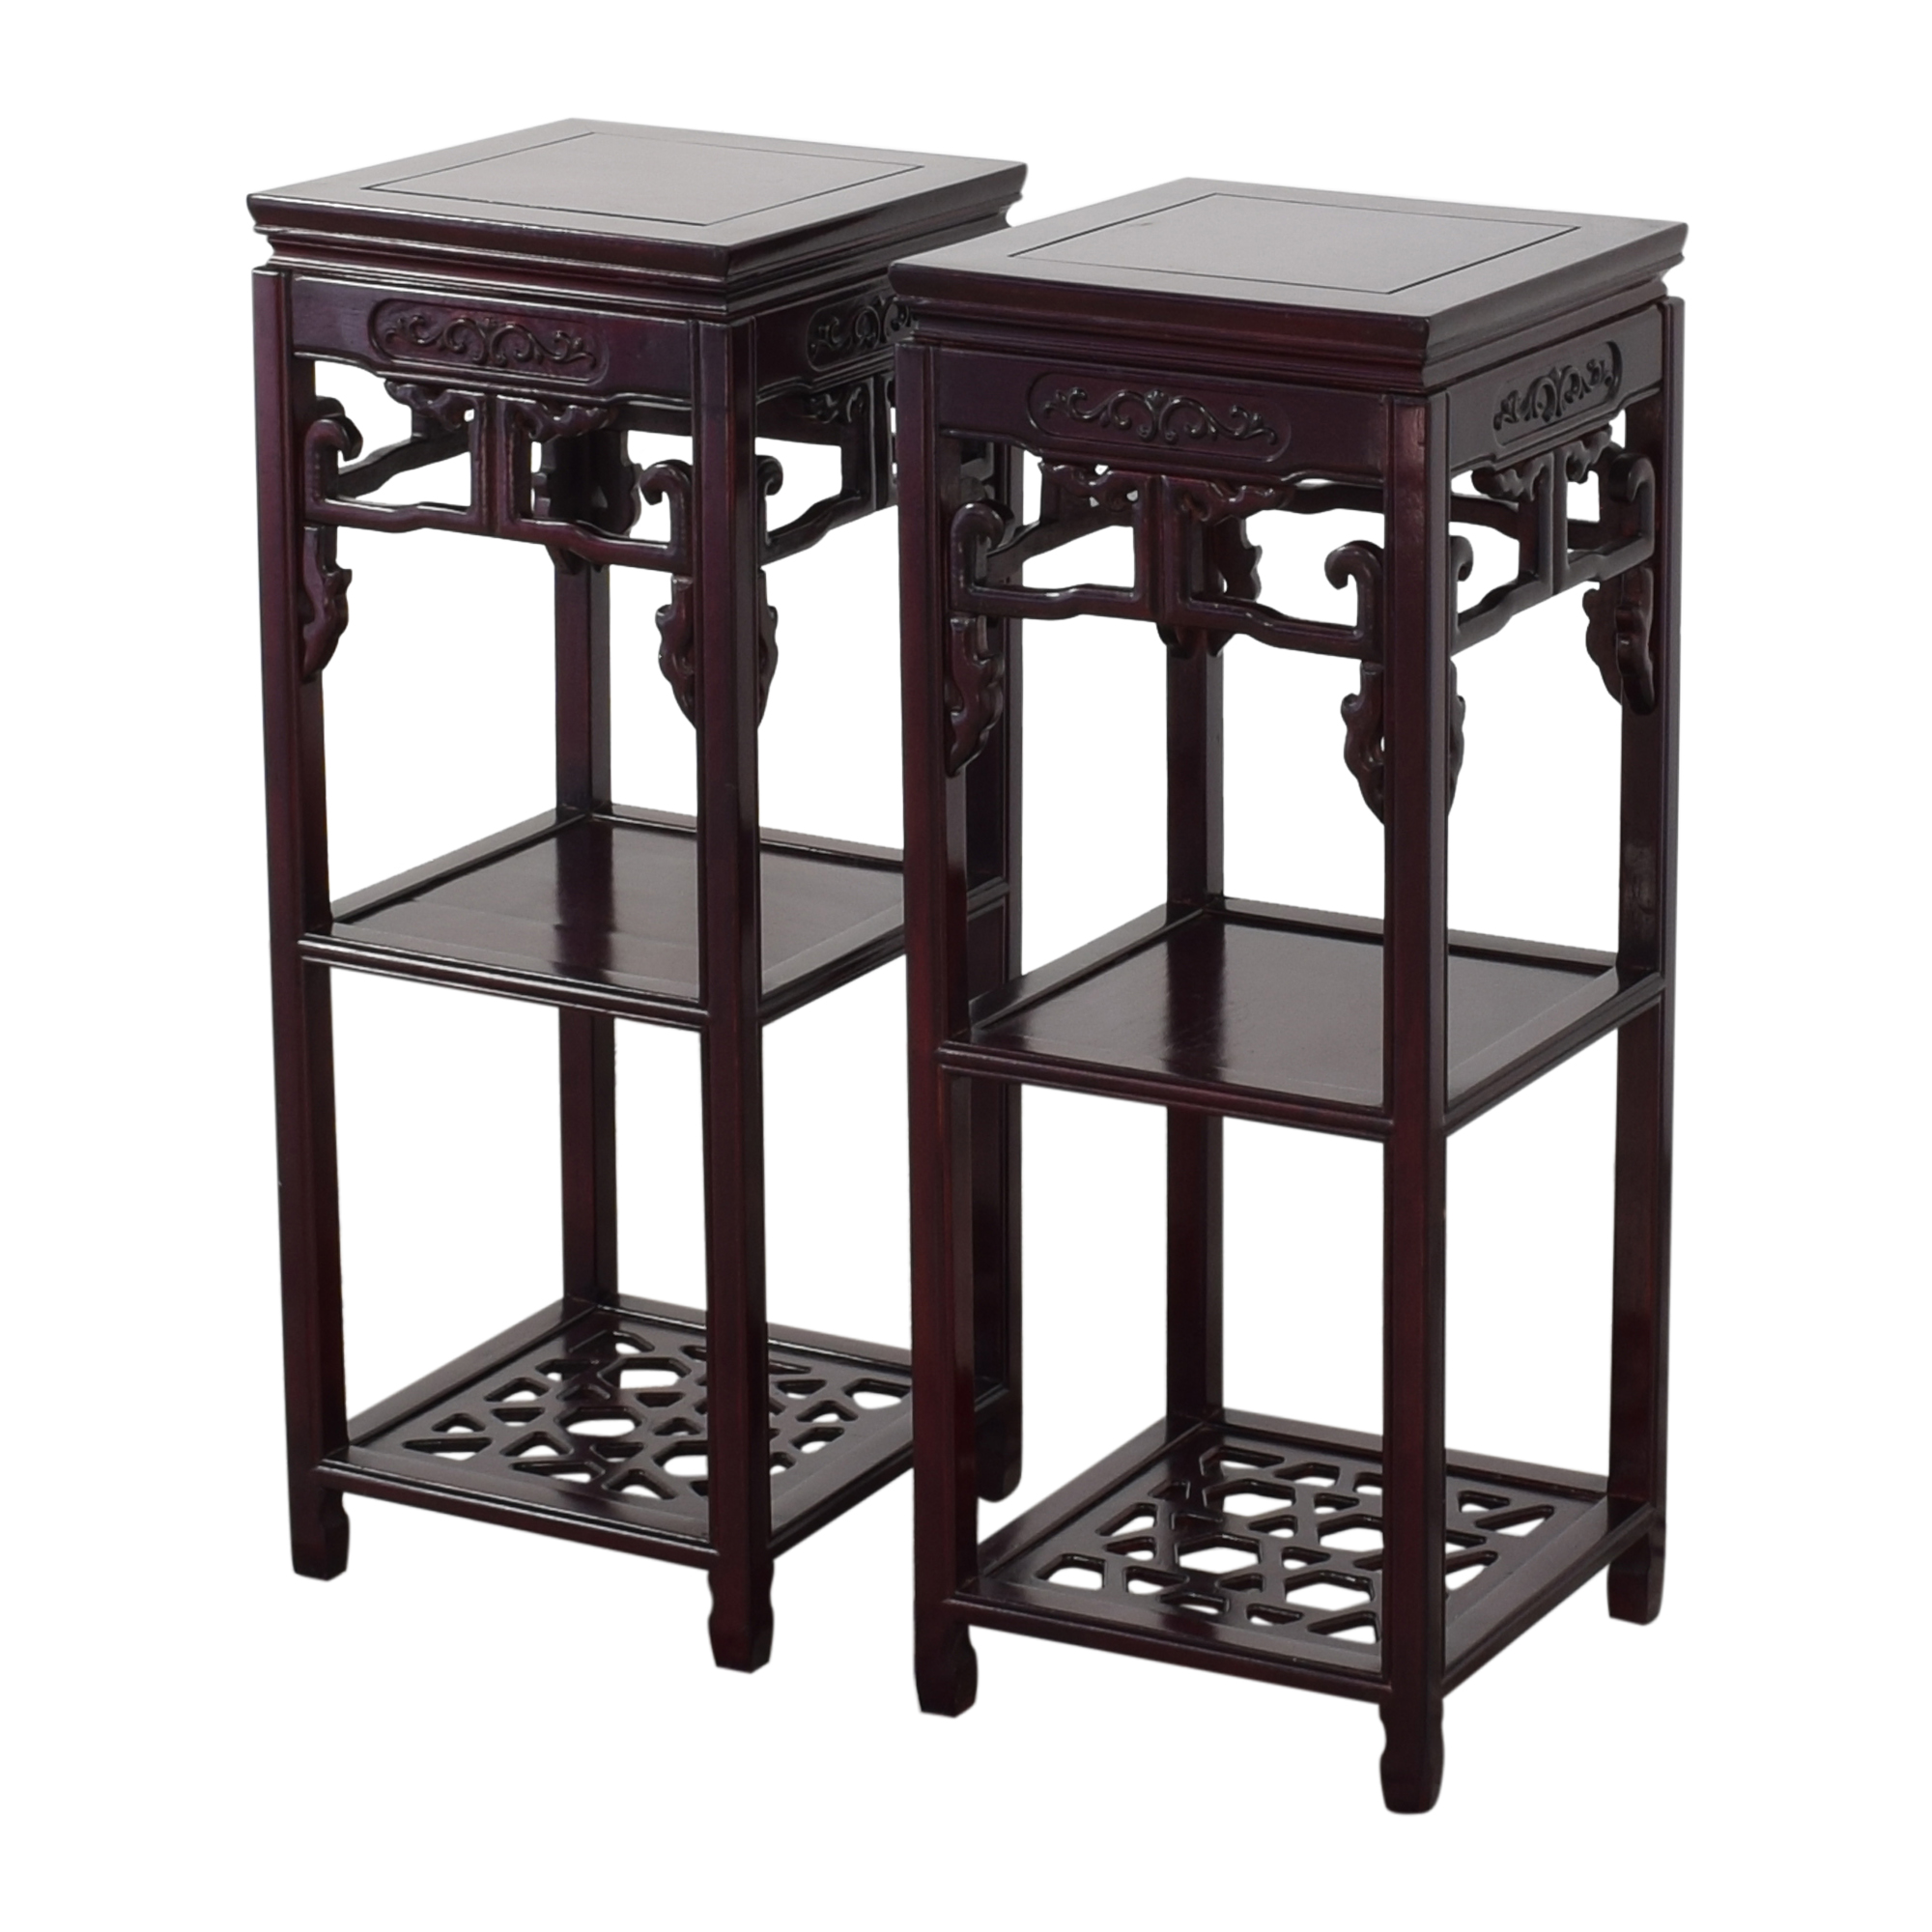 Carved Three Tier Plant Stands on sale